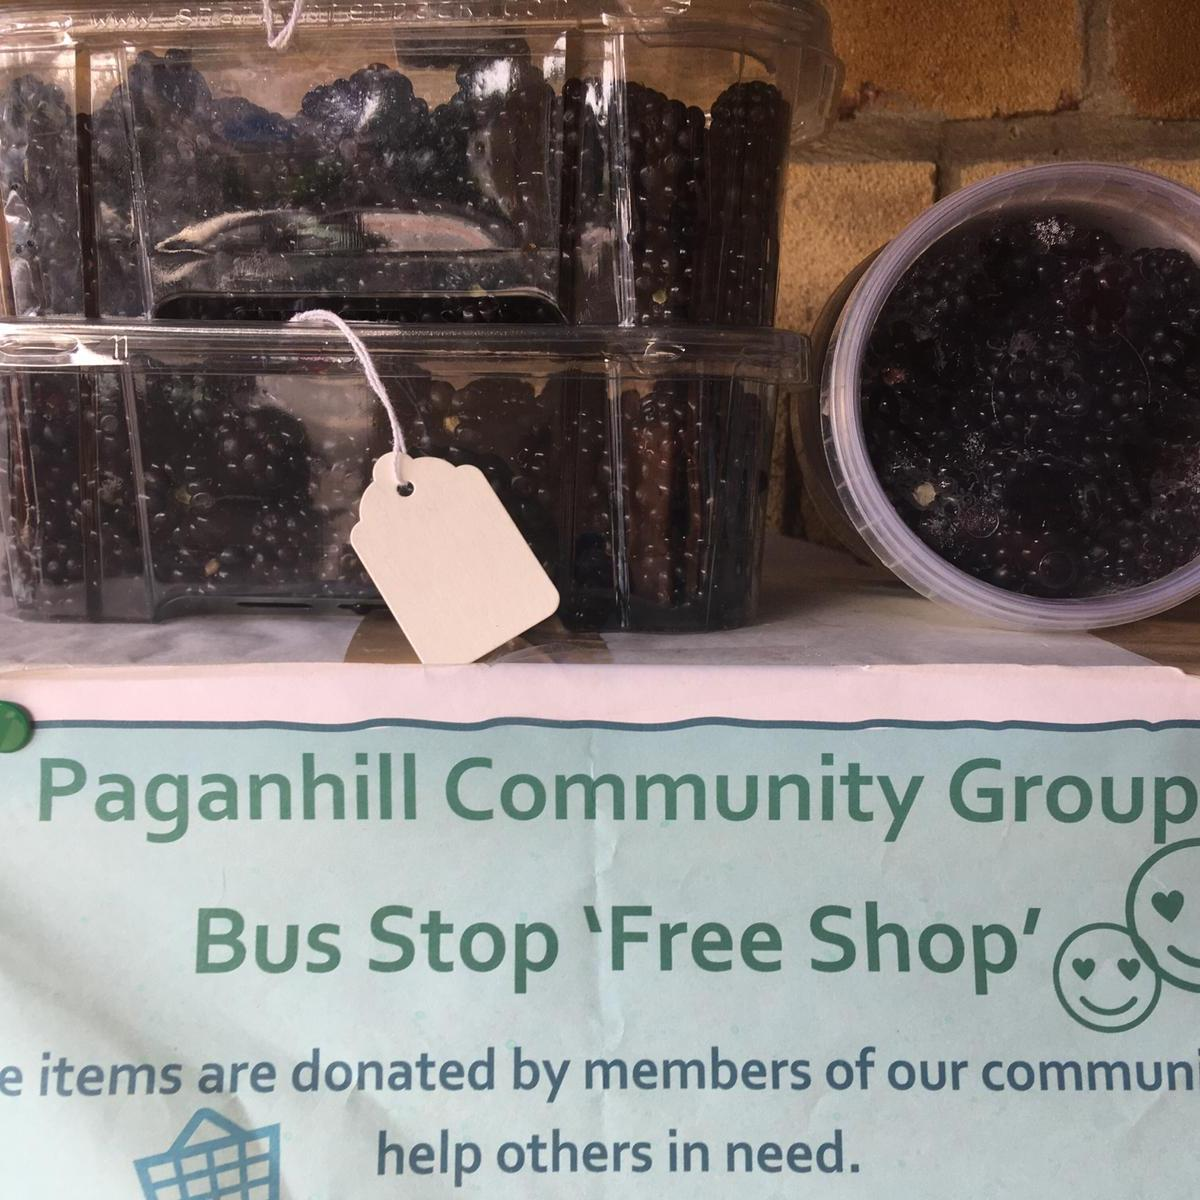 Paganhill bus stop shop